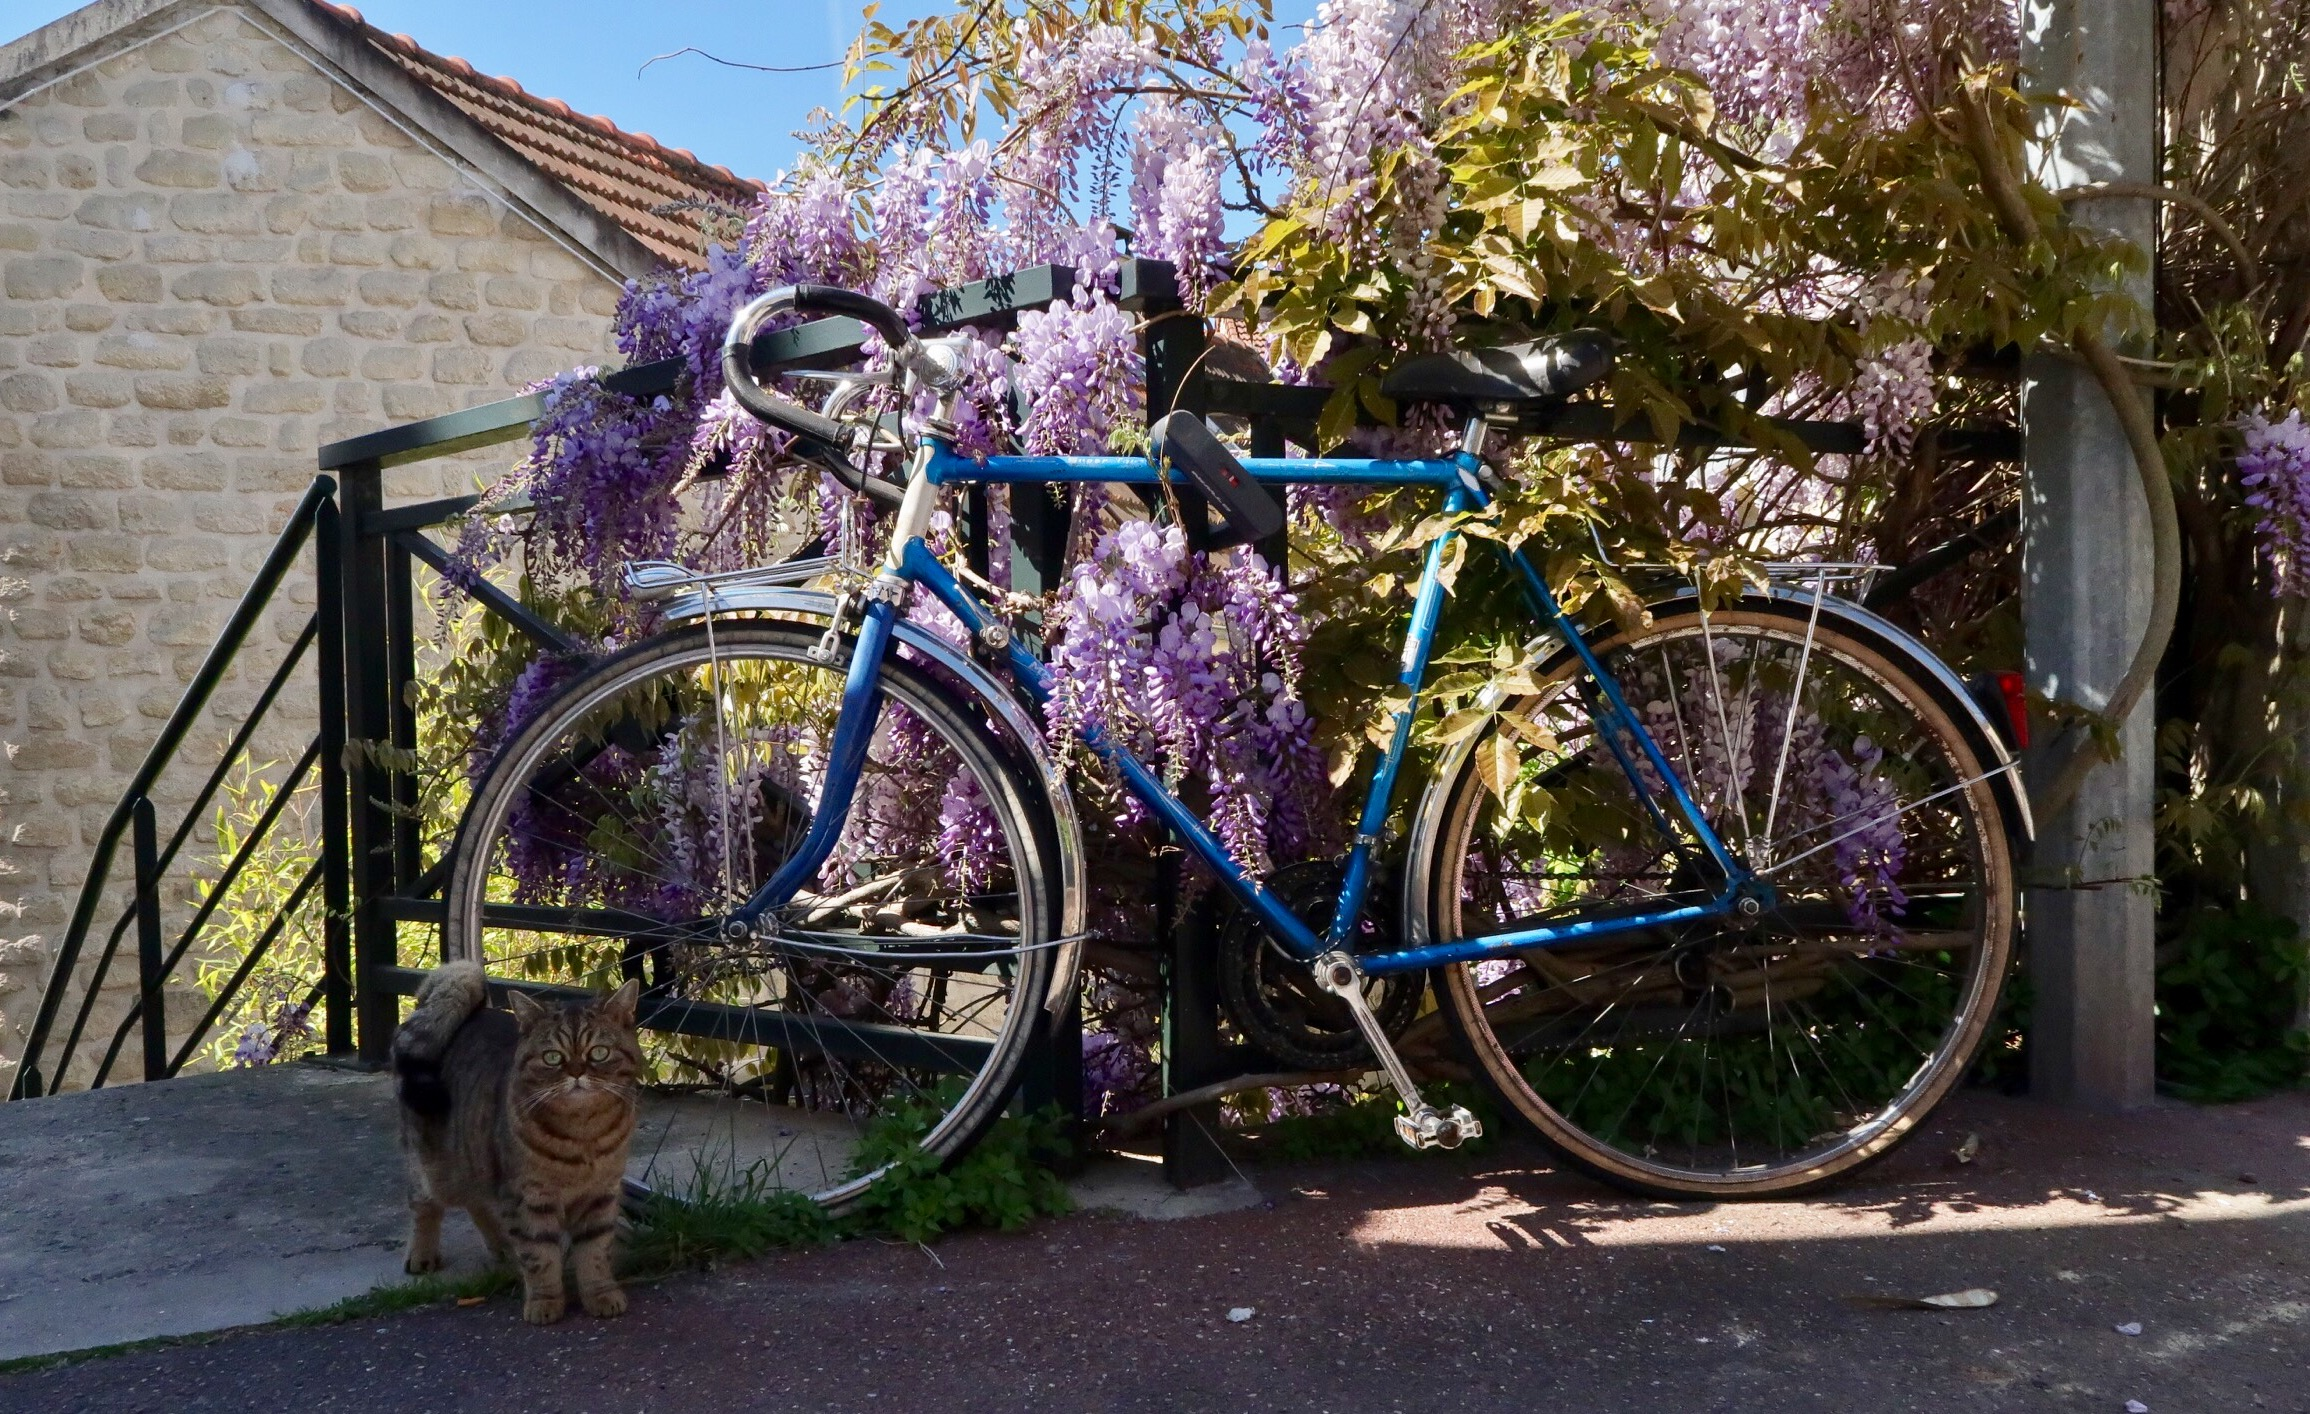 How thoughtful of the bike owner to park up just there, and the cat to stroll by just then...I love this photograph.